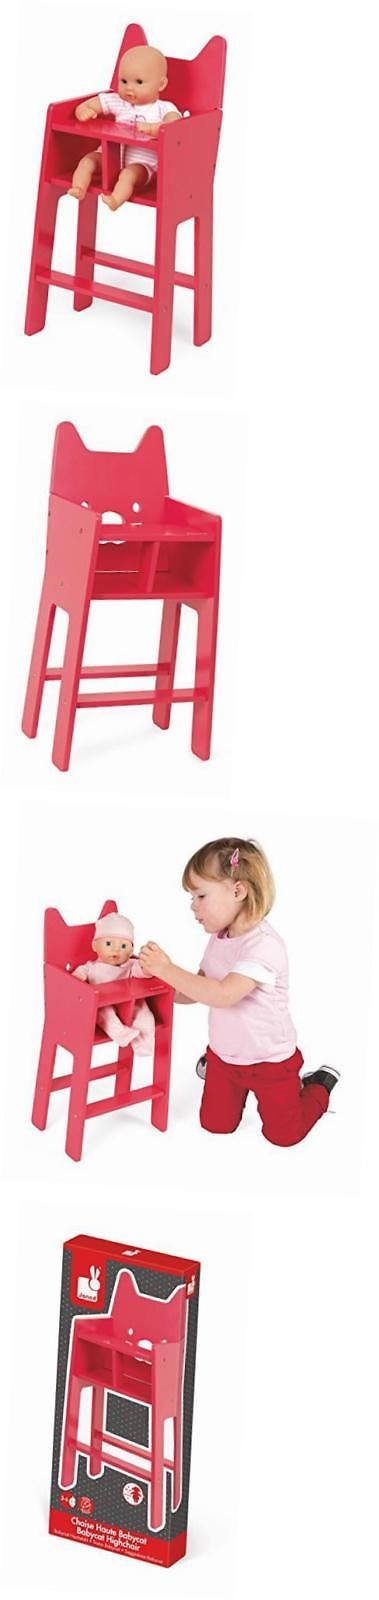 Dollhouse Size 19179: Babycat Pink High Chair -> BUY IT NOW ONLY: $48.58 on eBay!